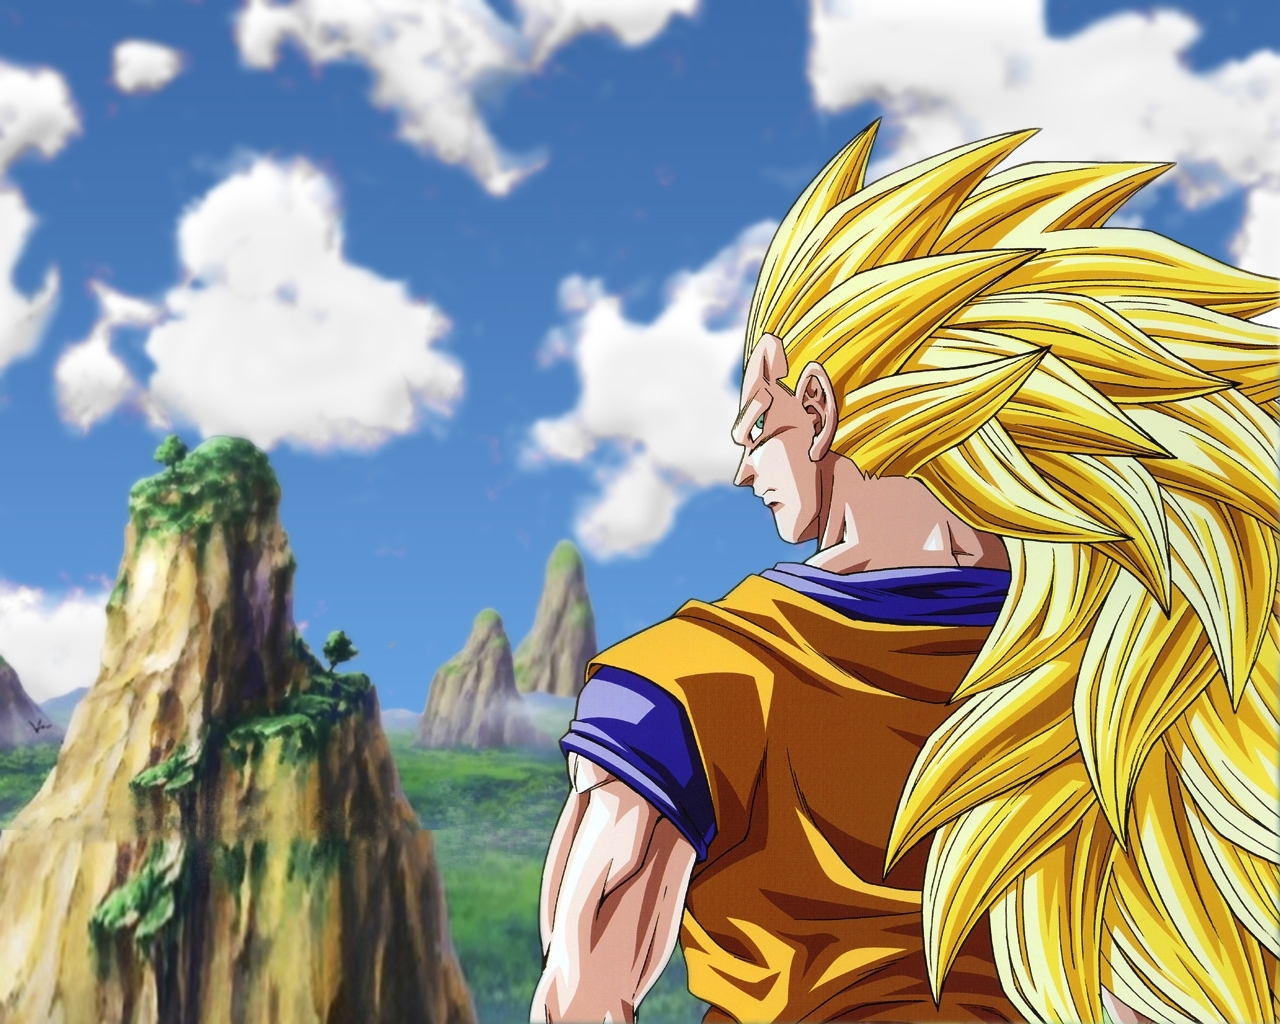 Goku Super Saiyan 3 Wallpaper Dragonball Z Movie Characters 16255428 1280 1024